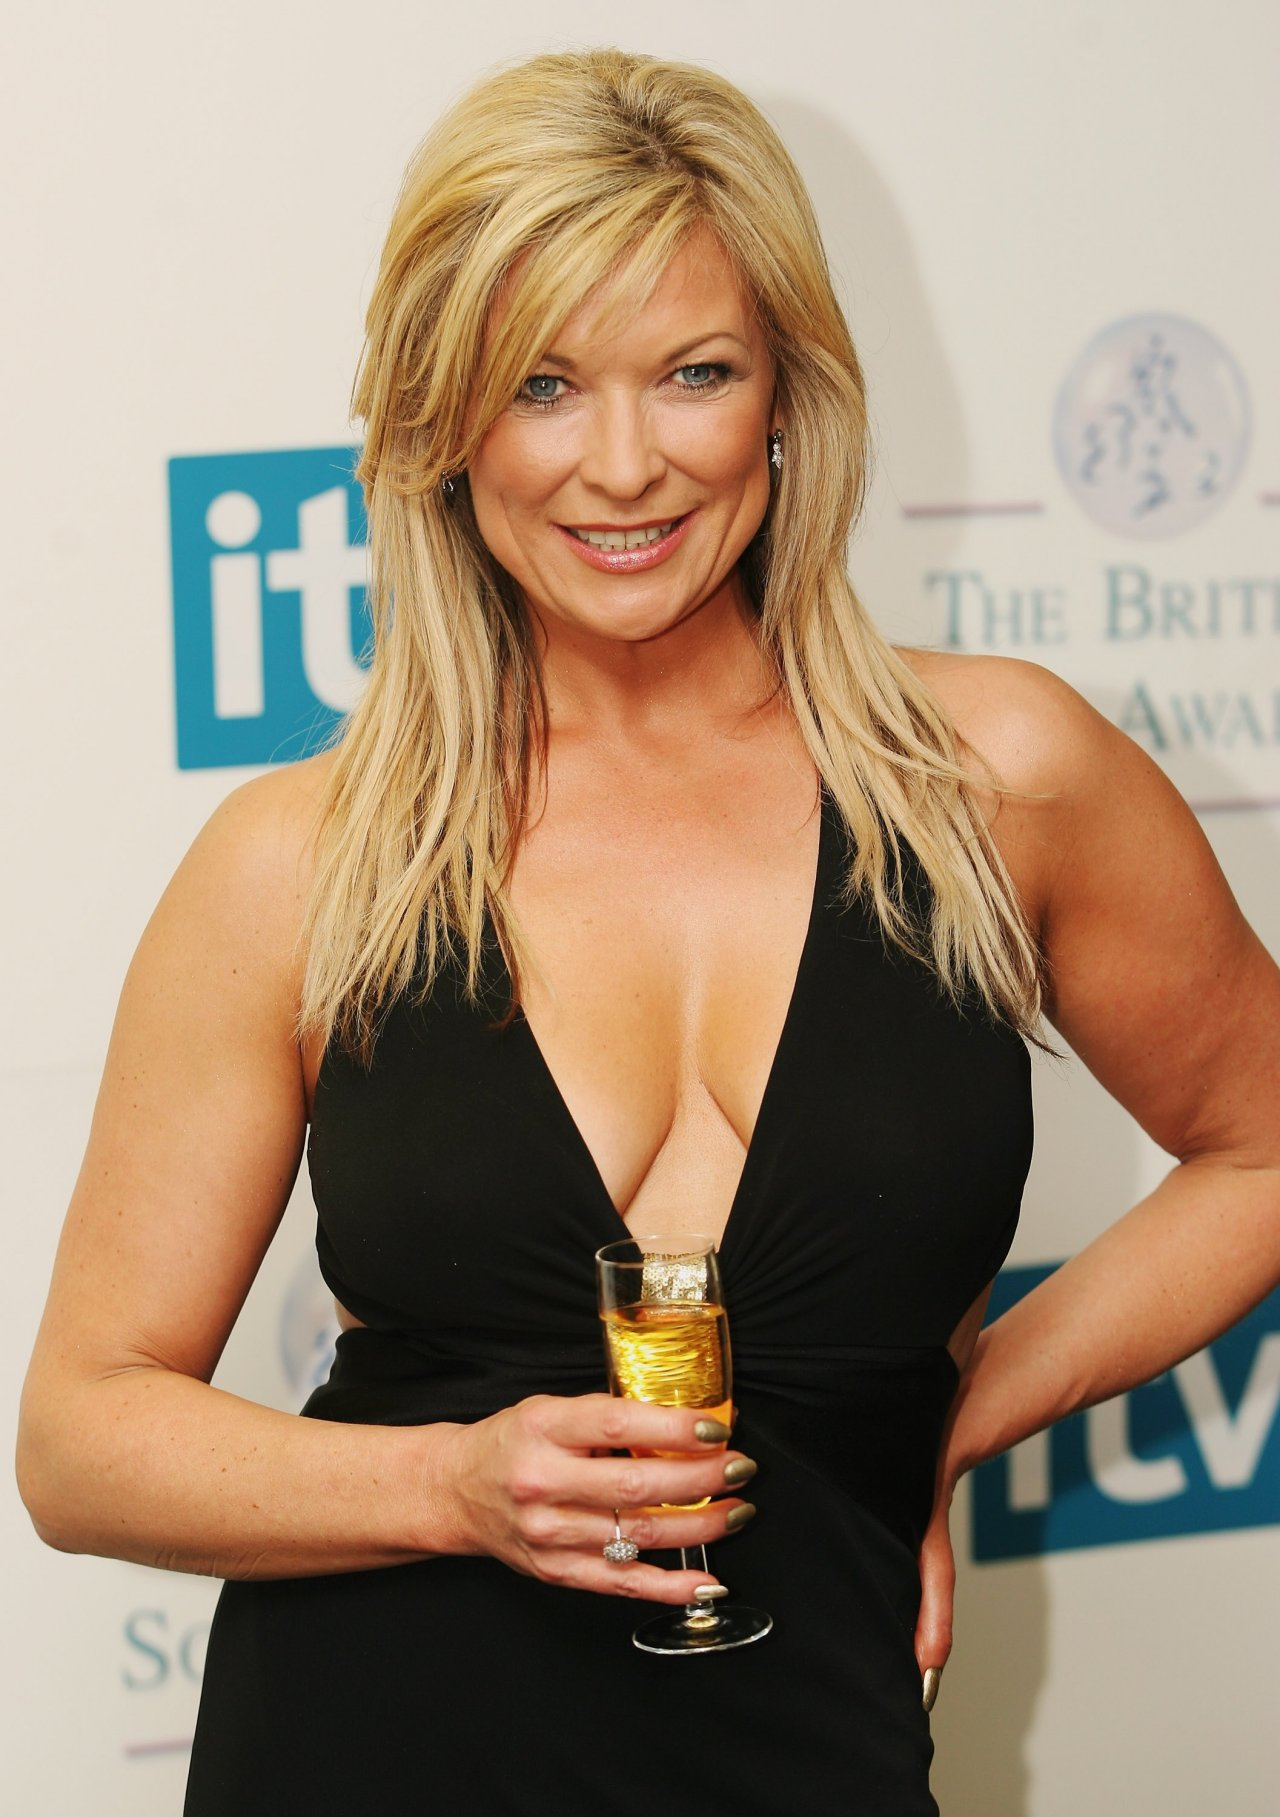 Woman. claire king